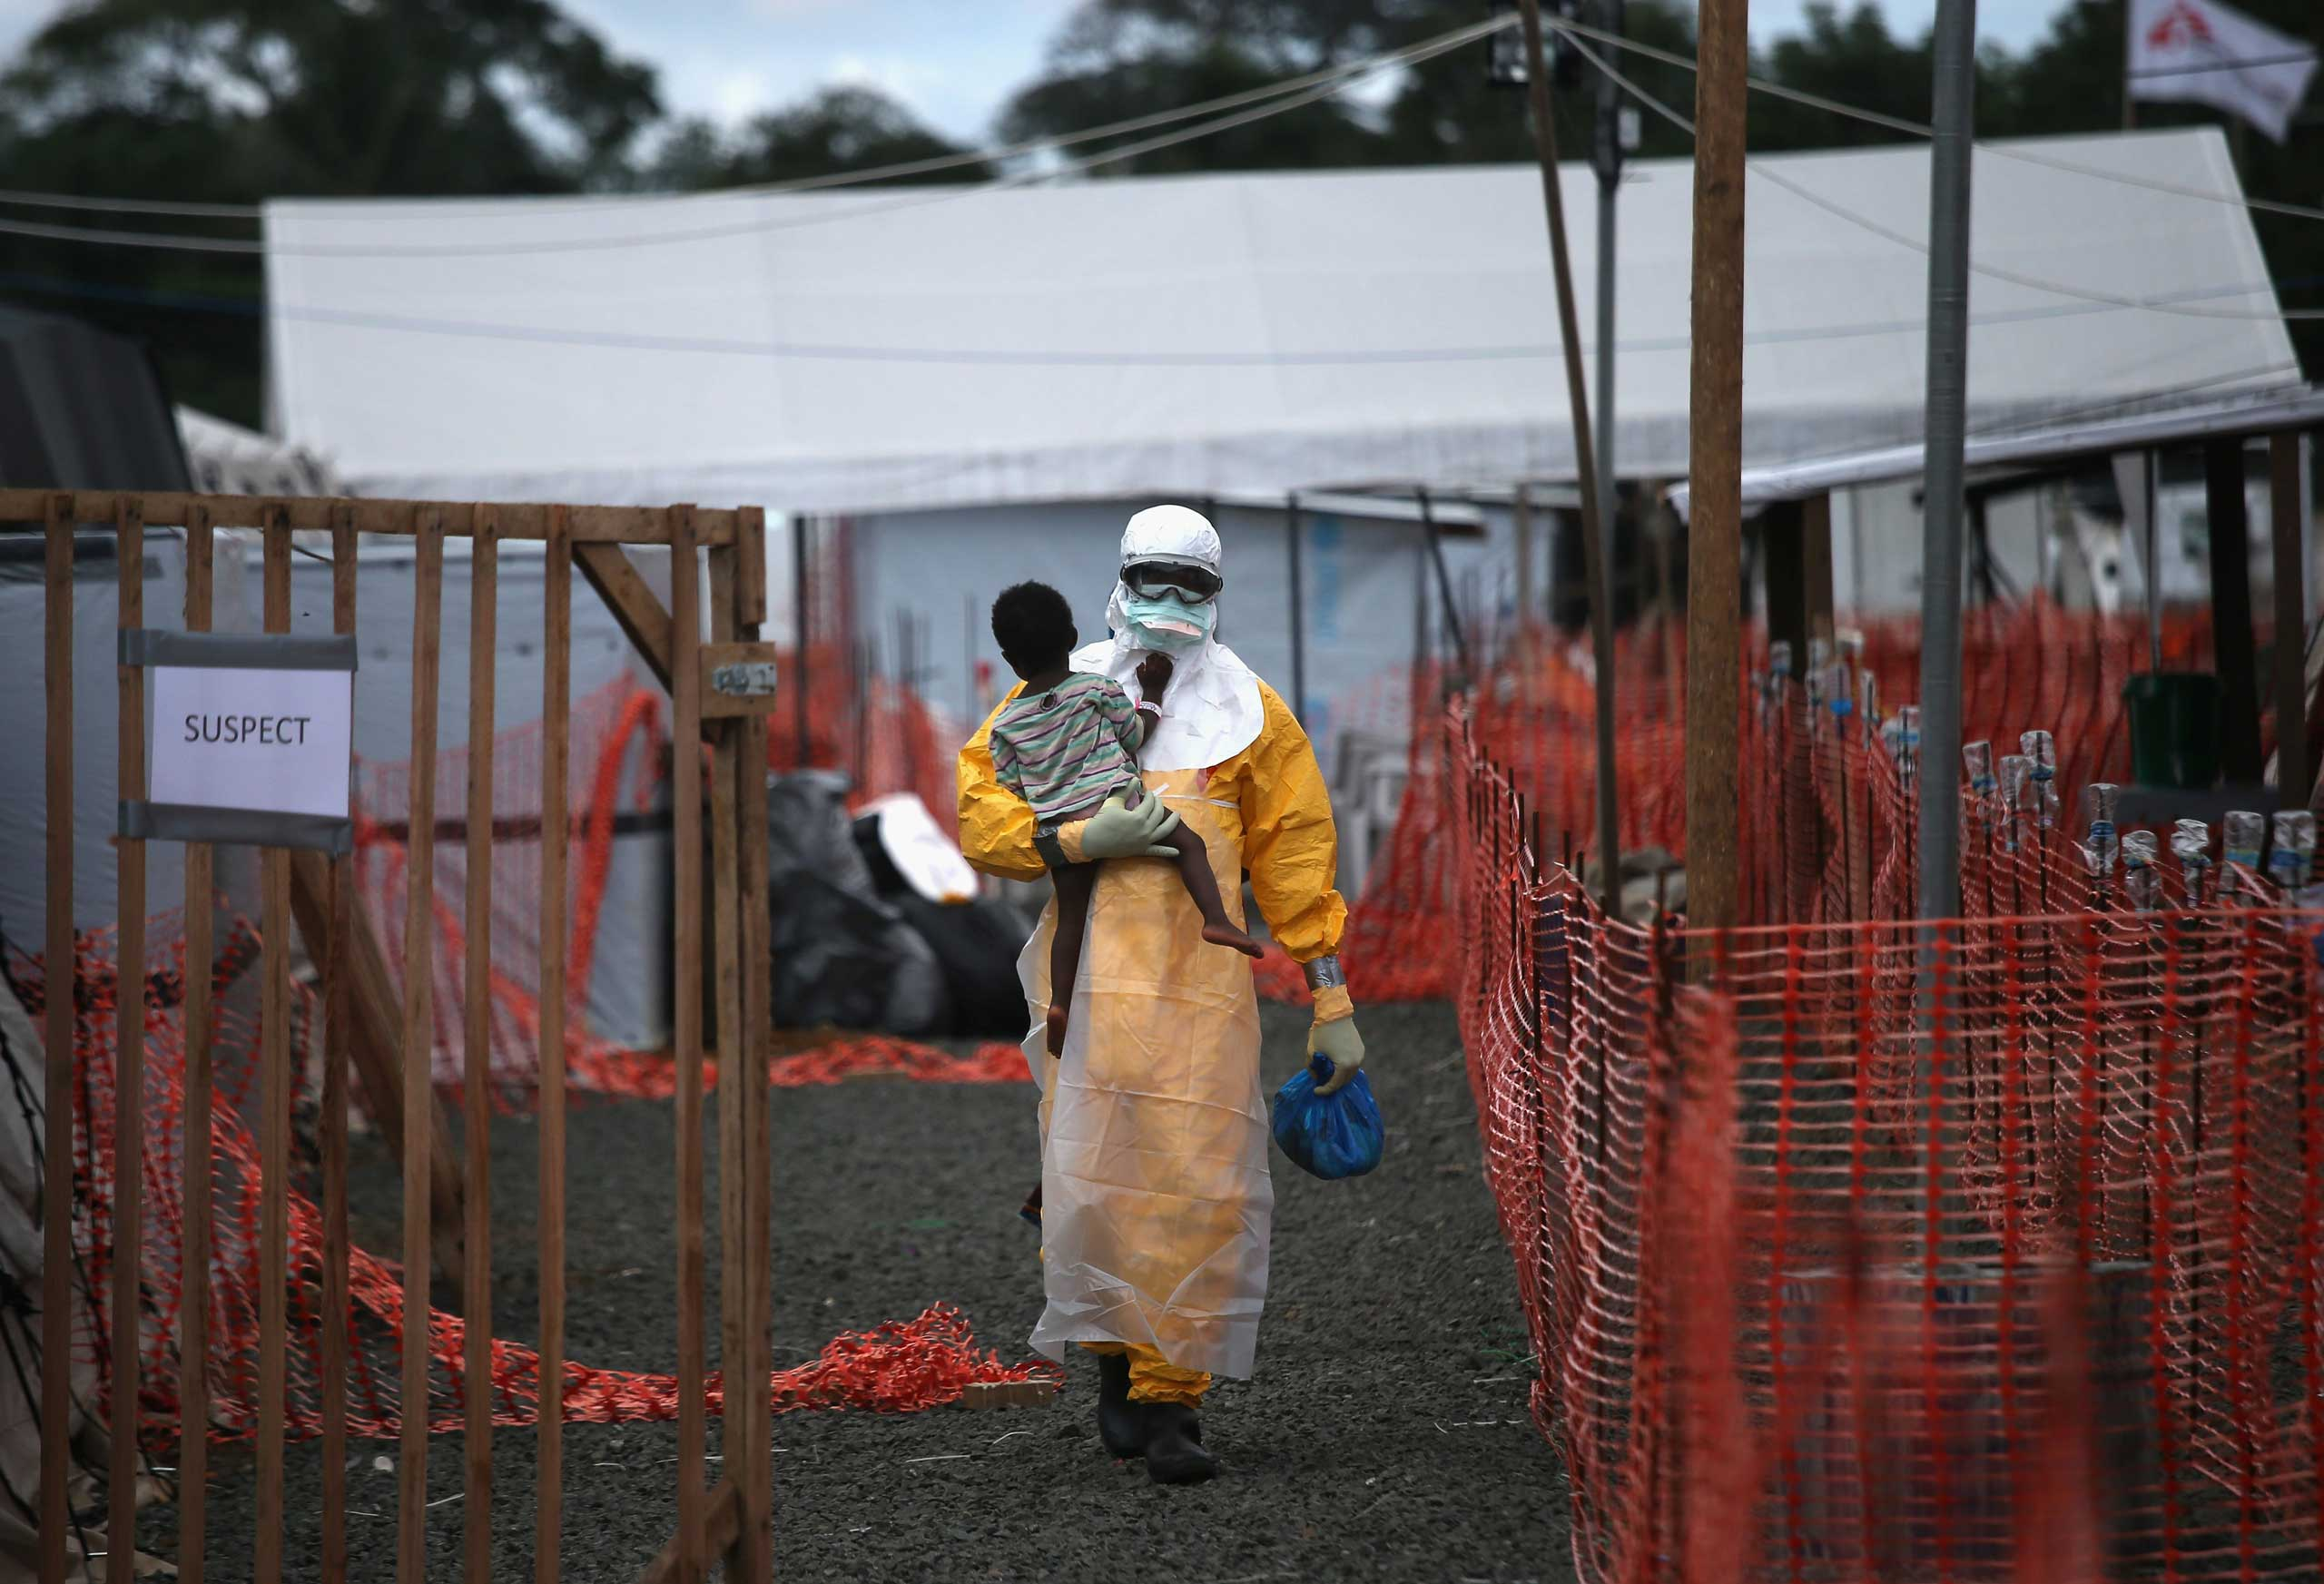 A Doctors Without Borders (MSF), health worker in protective clothing carries a child suspected of having Ebola in the MSF treatment center on Oct. 5, 2014 in Paynesville, Liberia.